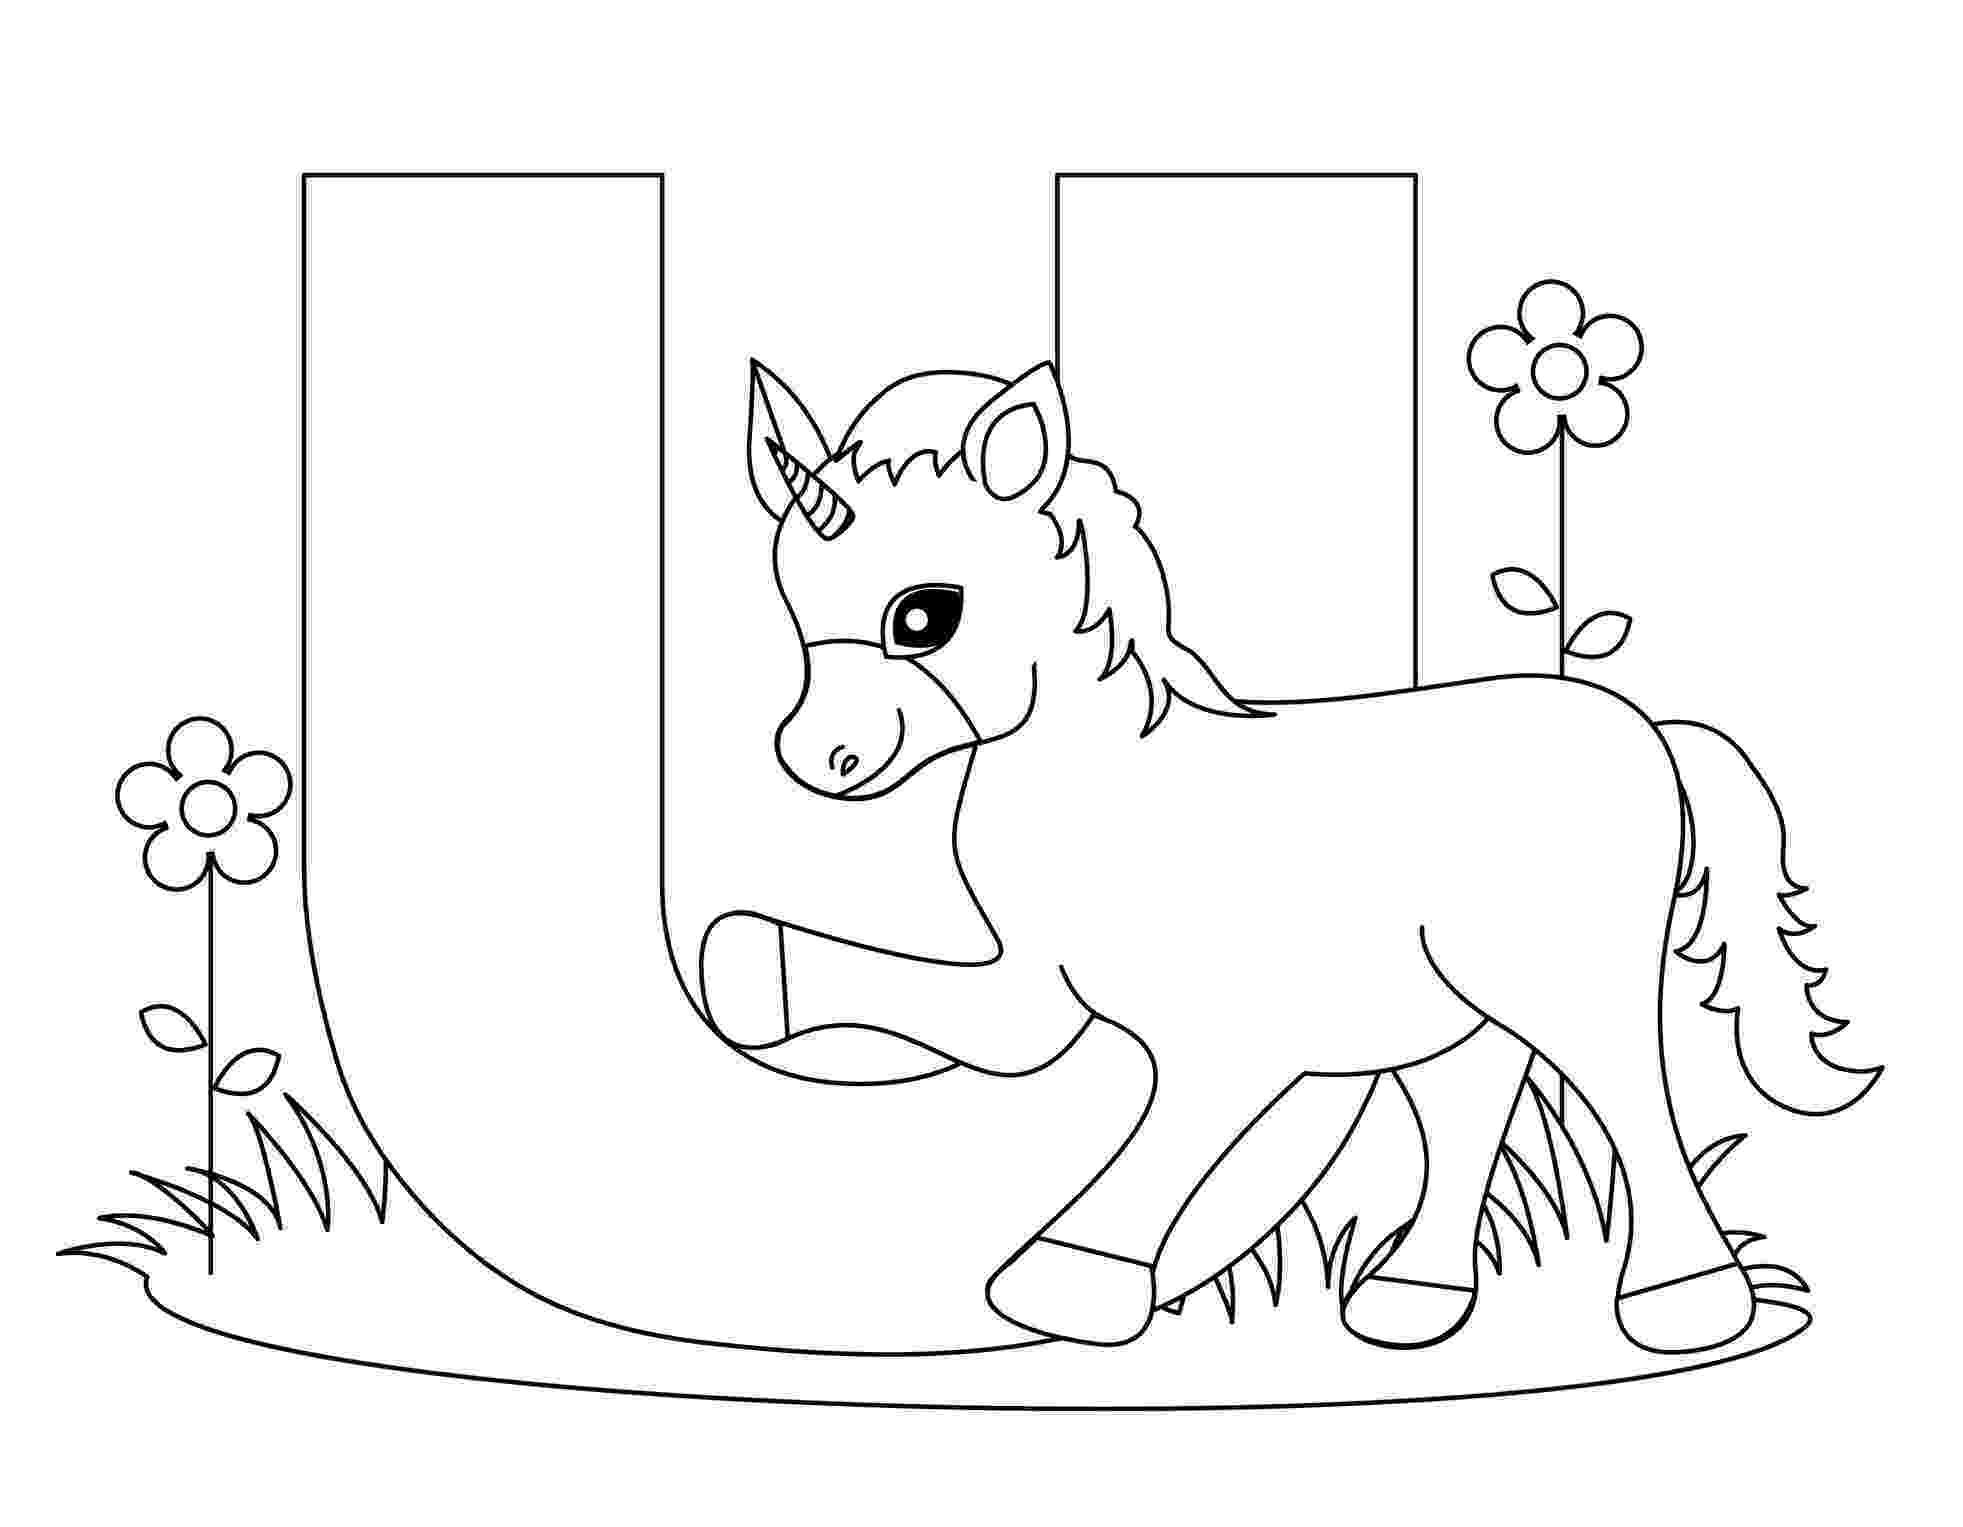 alphabet coloring pages for preschoolers free printable alphabet coloring pages for kids best coloring pages preschoolers for alphabet